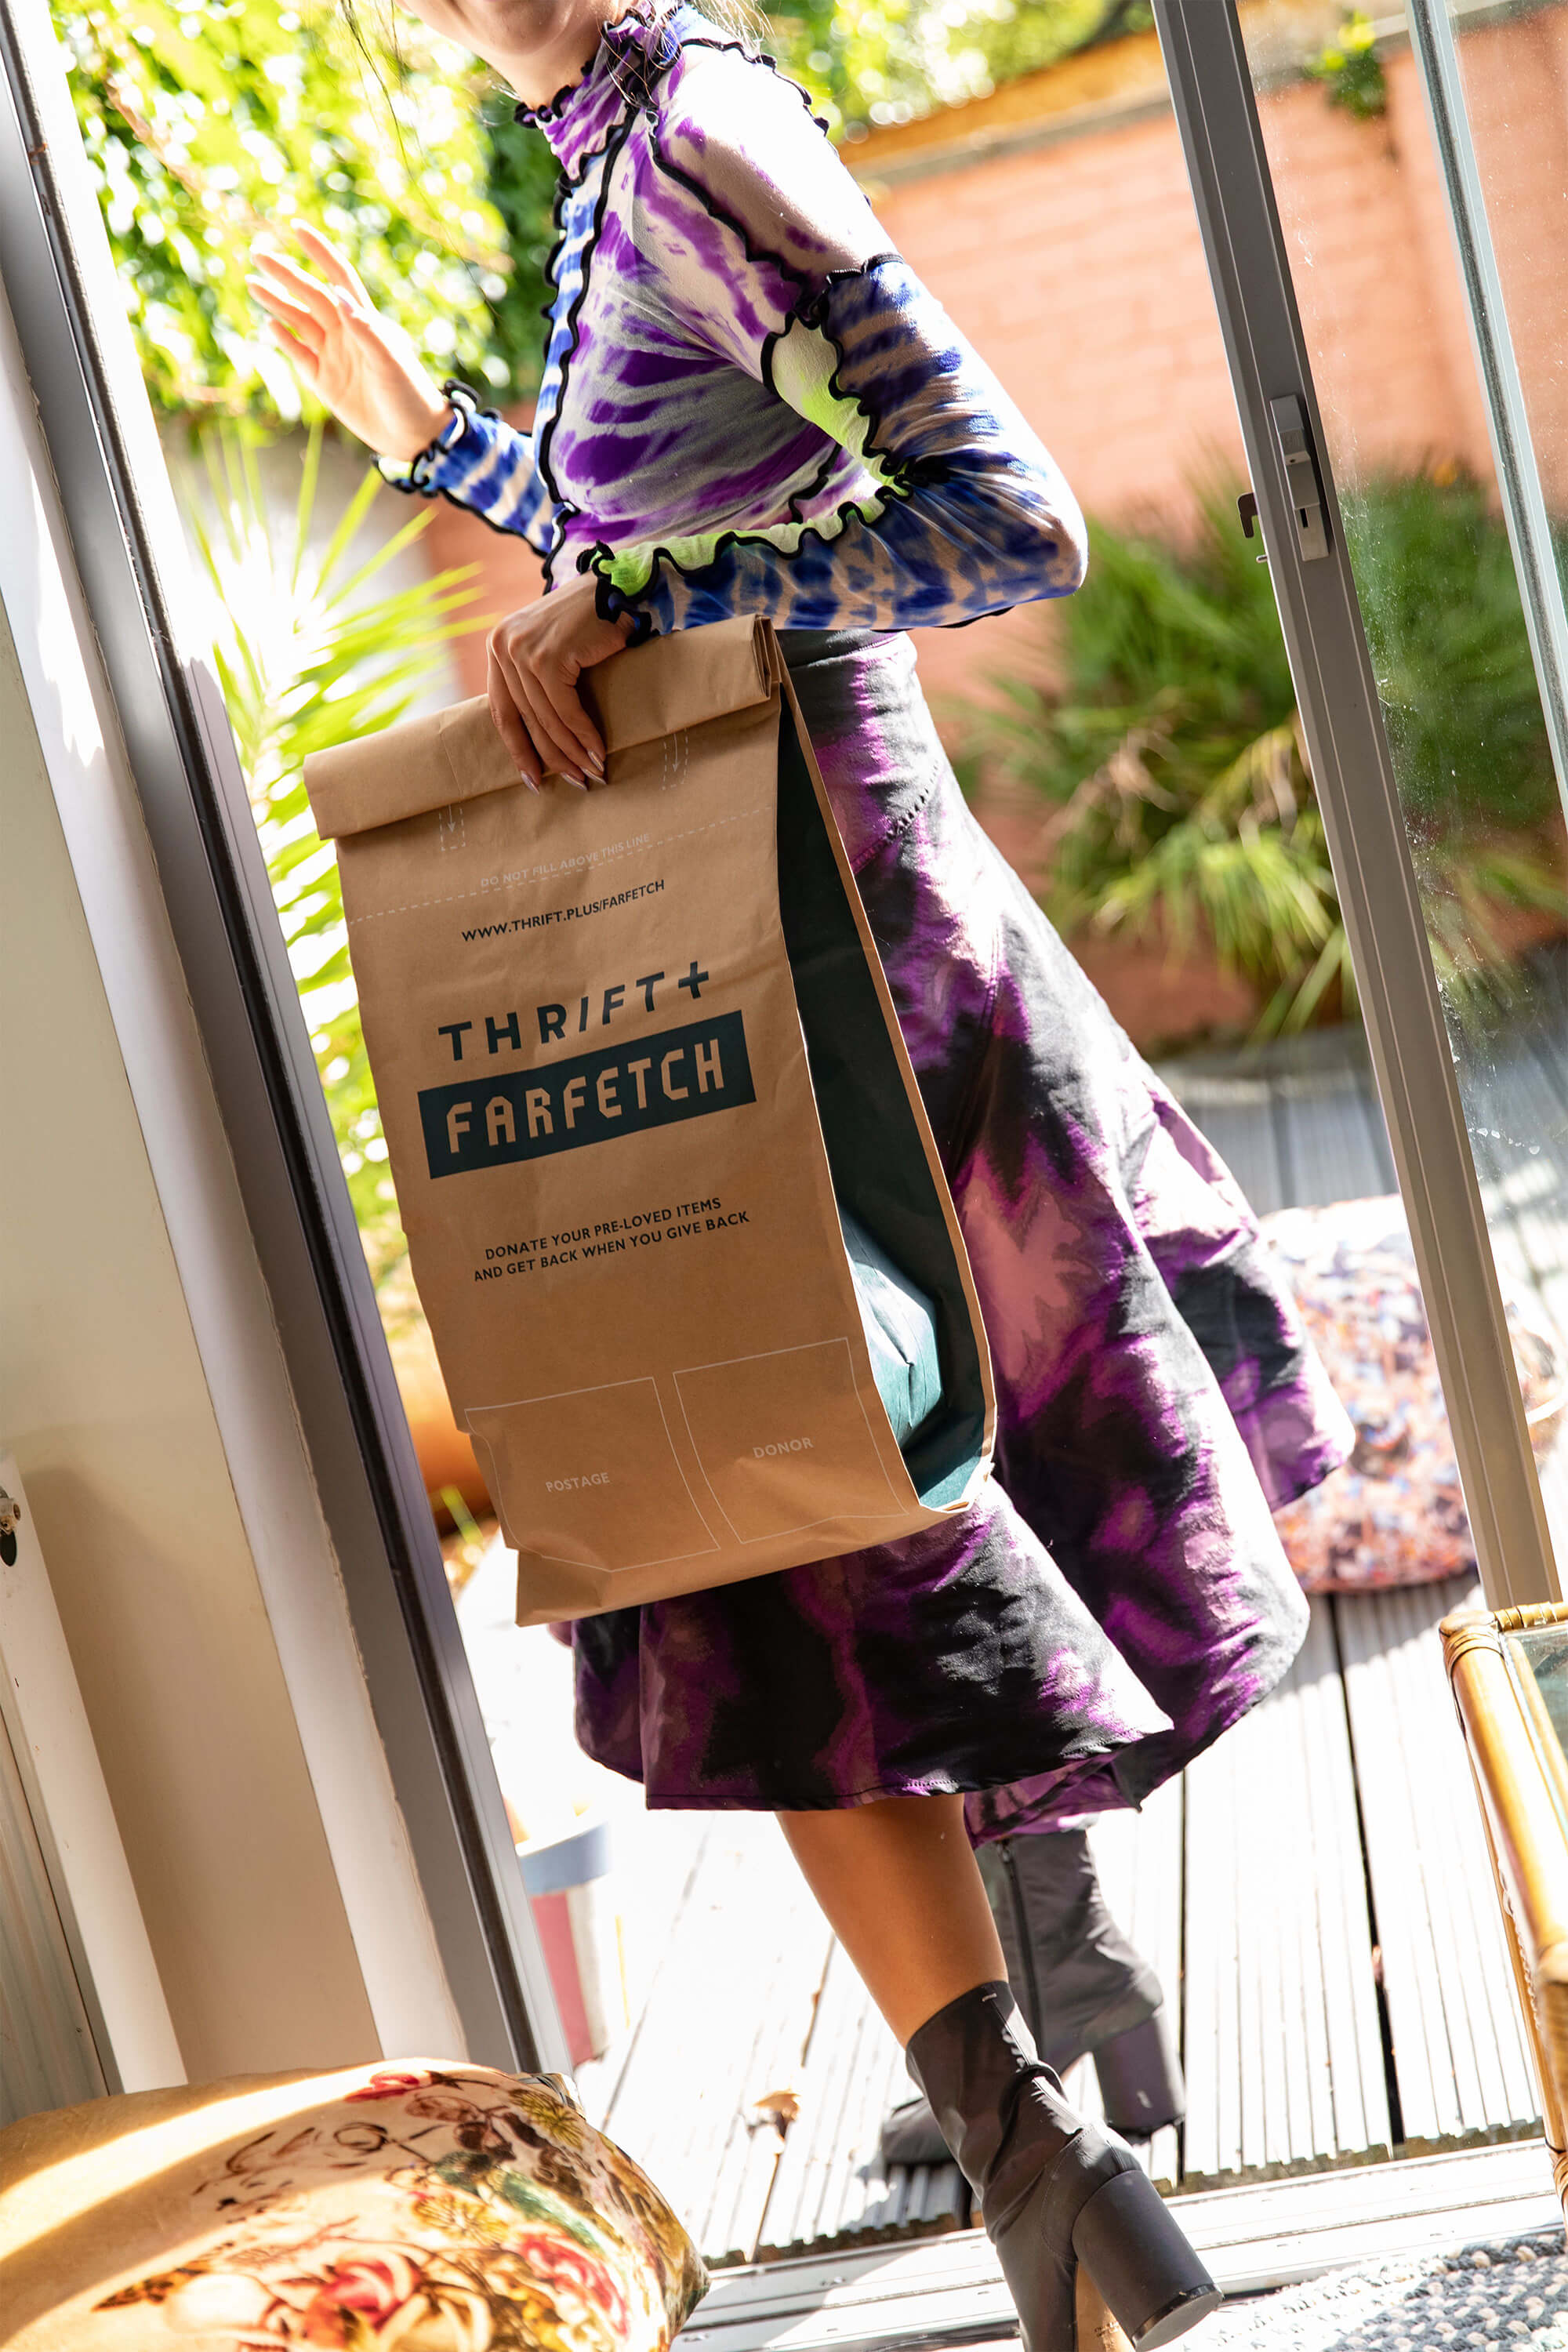 A woman holding a paper bag from Thrift + Farfetch